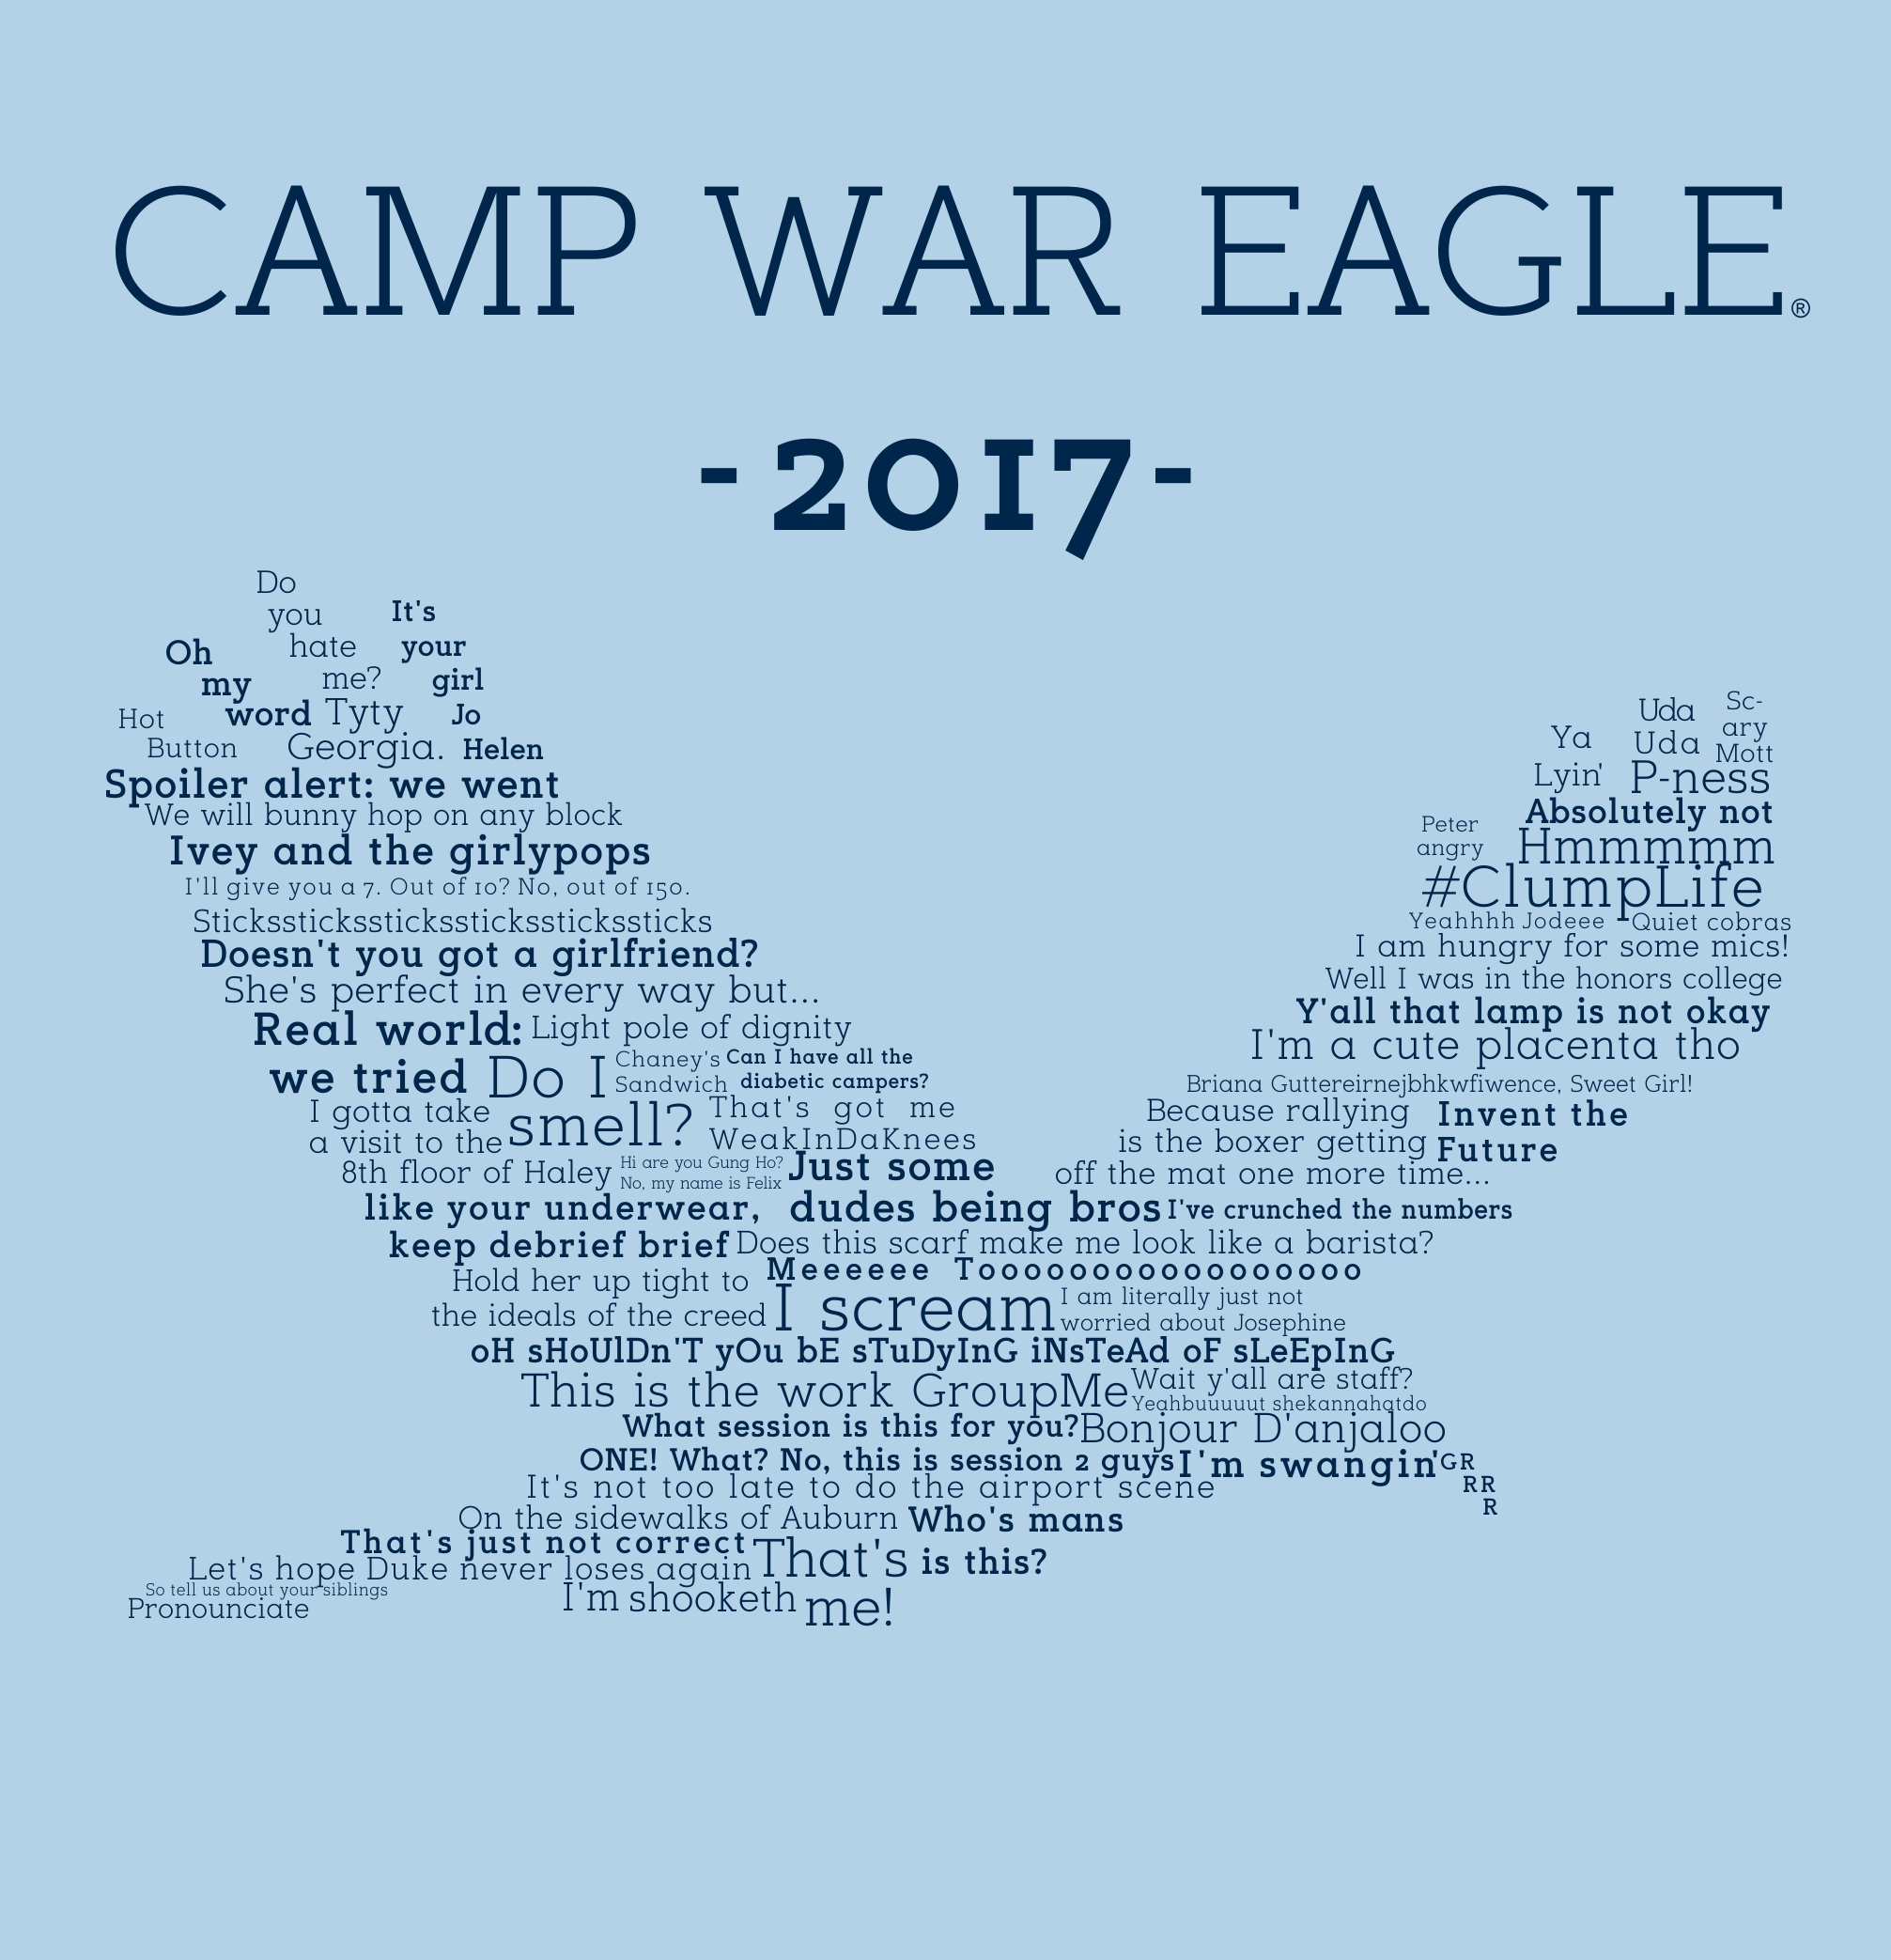 cwe_camp_counselor_2017_quote_back.jpg